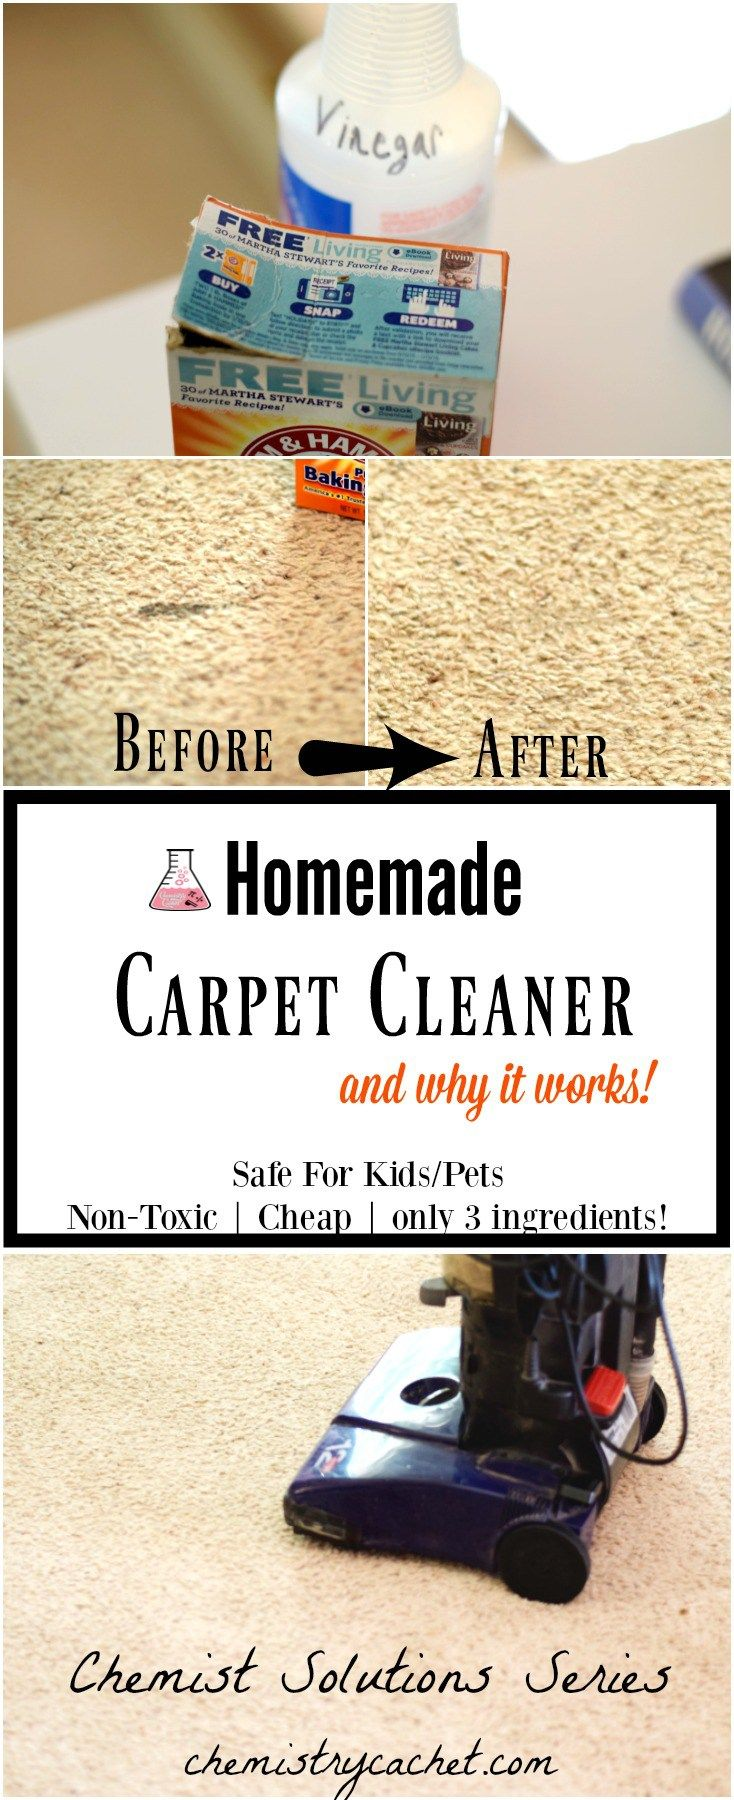 Easy homemade carpet cleaner only 3 ingredients saving money chemistry cachets homemade carpet cleaner recipe safe easy and cheap carpet stain remover solutioingenieria Gallery